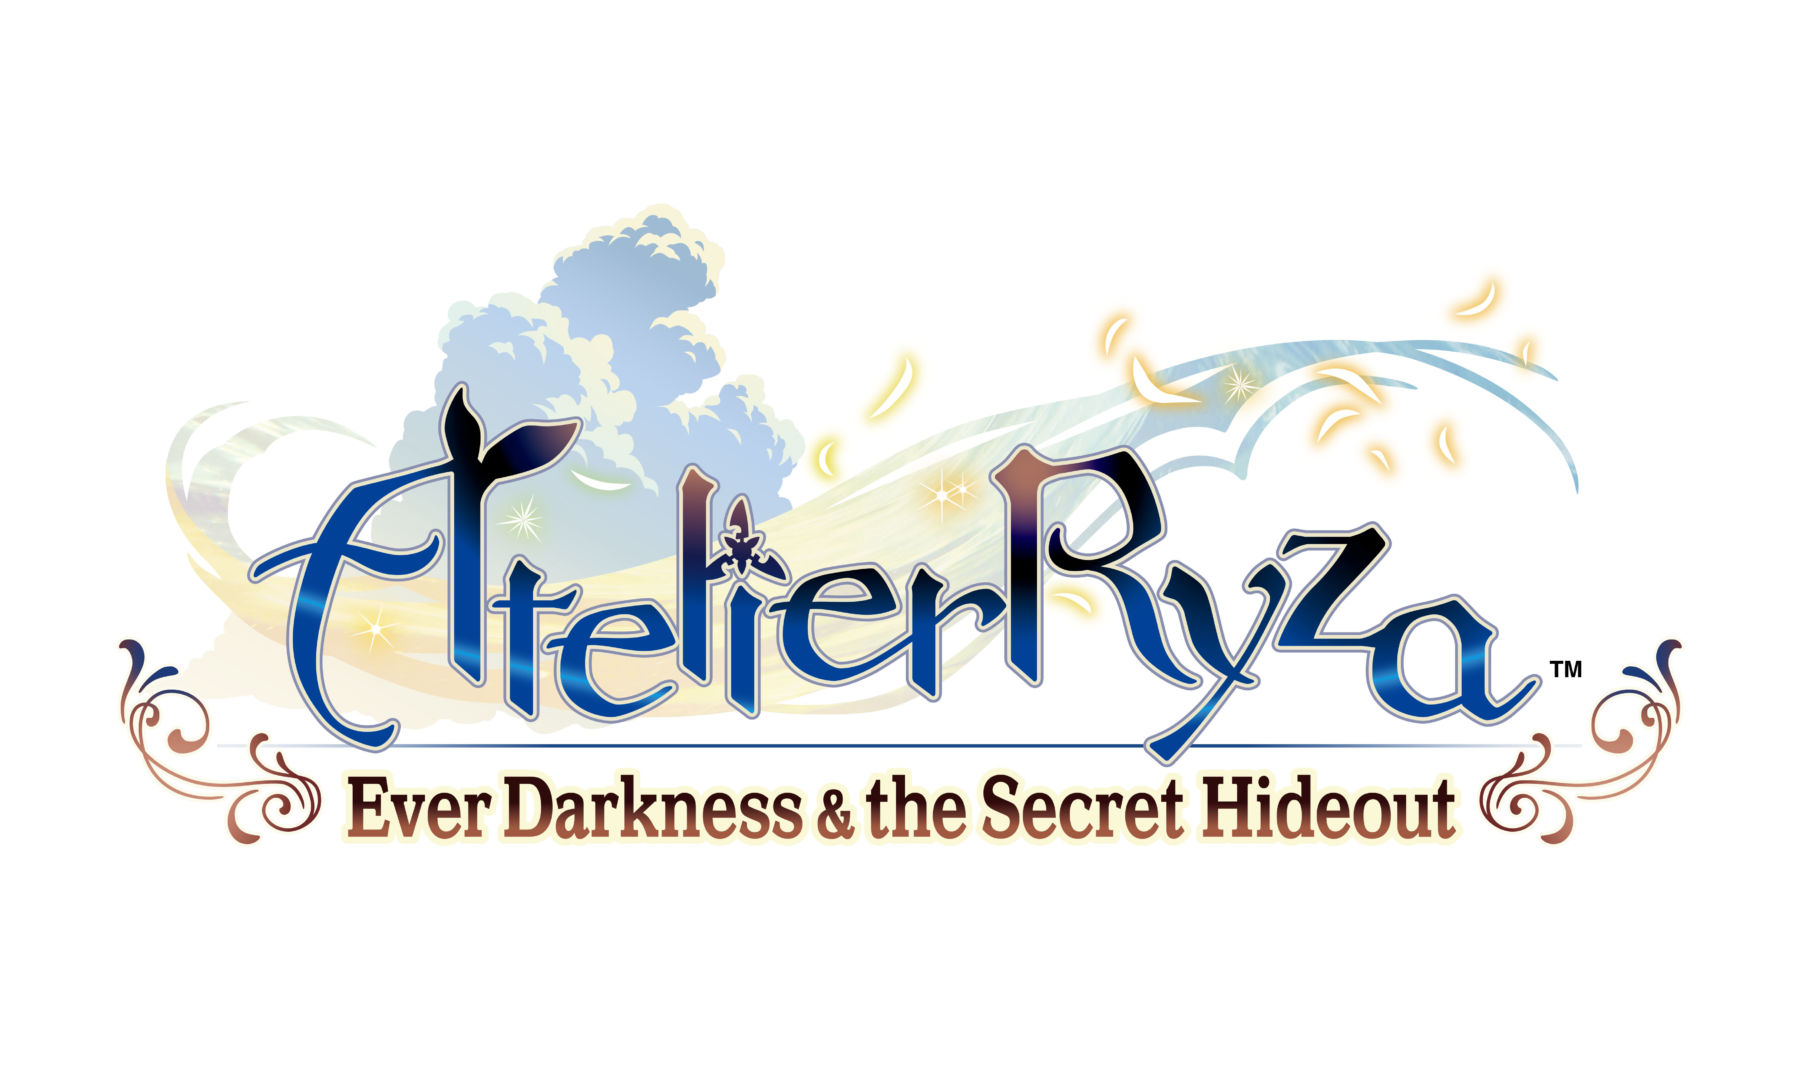 Atelier Ryza: Ever Darkness & the Secret Hideoutvvvvvvvvvvvvvvvvvvvvvvvvvvvvvvvvvvvvvvvvvvvvvvvvvvvvvvvvvvvvvvvvvvvvvvvvvvvvvvvvvvvvvvvvvvvvvvvvvvvvvvvvvvvvvvvvvvvvvvvvvvvvvvvvvvvvvvvvvvvvvvvvvvvvvvvvvvvvvvvvvvvvvvvvvvvvvvvvvvvvvvvvvvvvvvvvvvvvvvvvvvvvvvvvvvvvvvvvvvvvvv